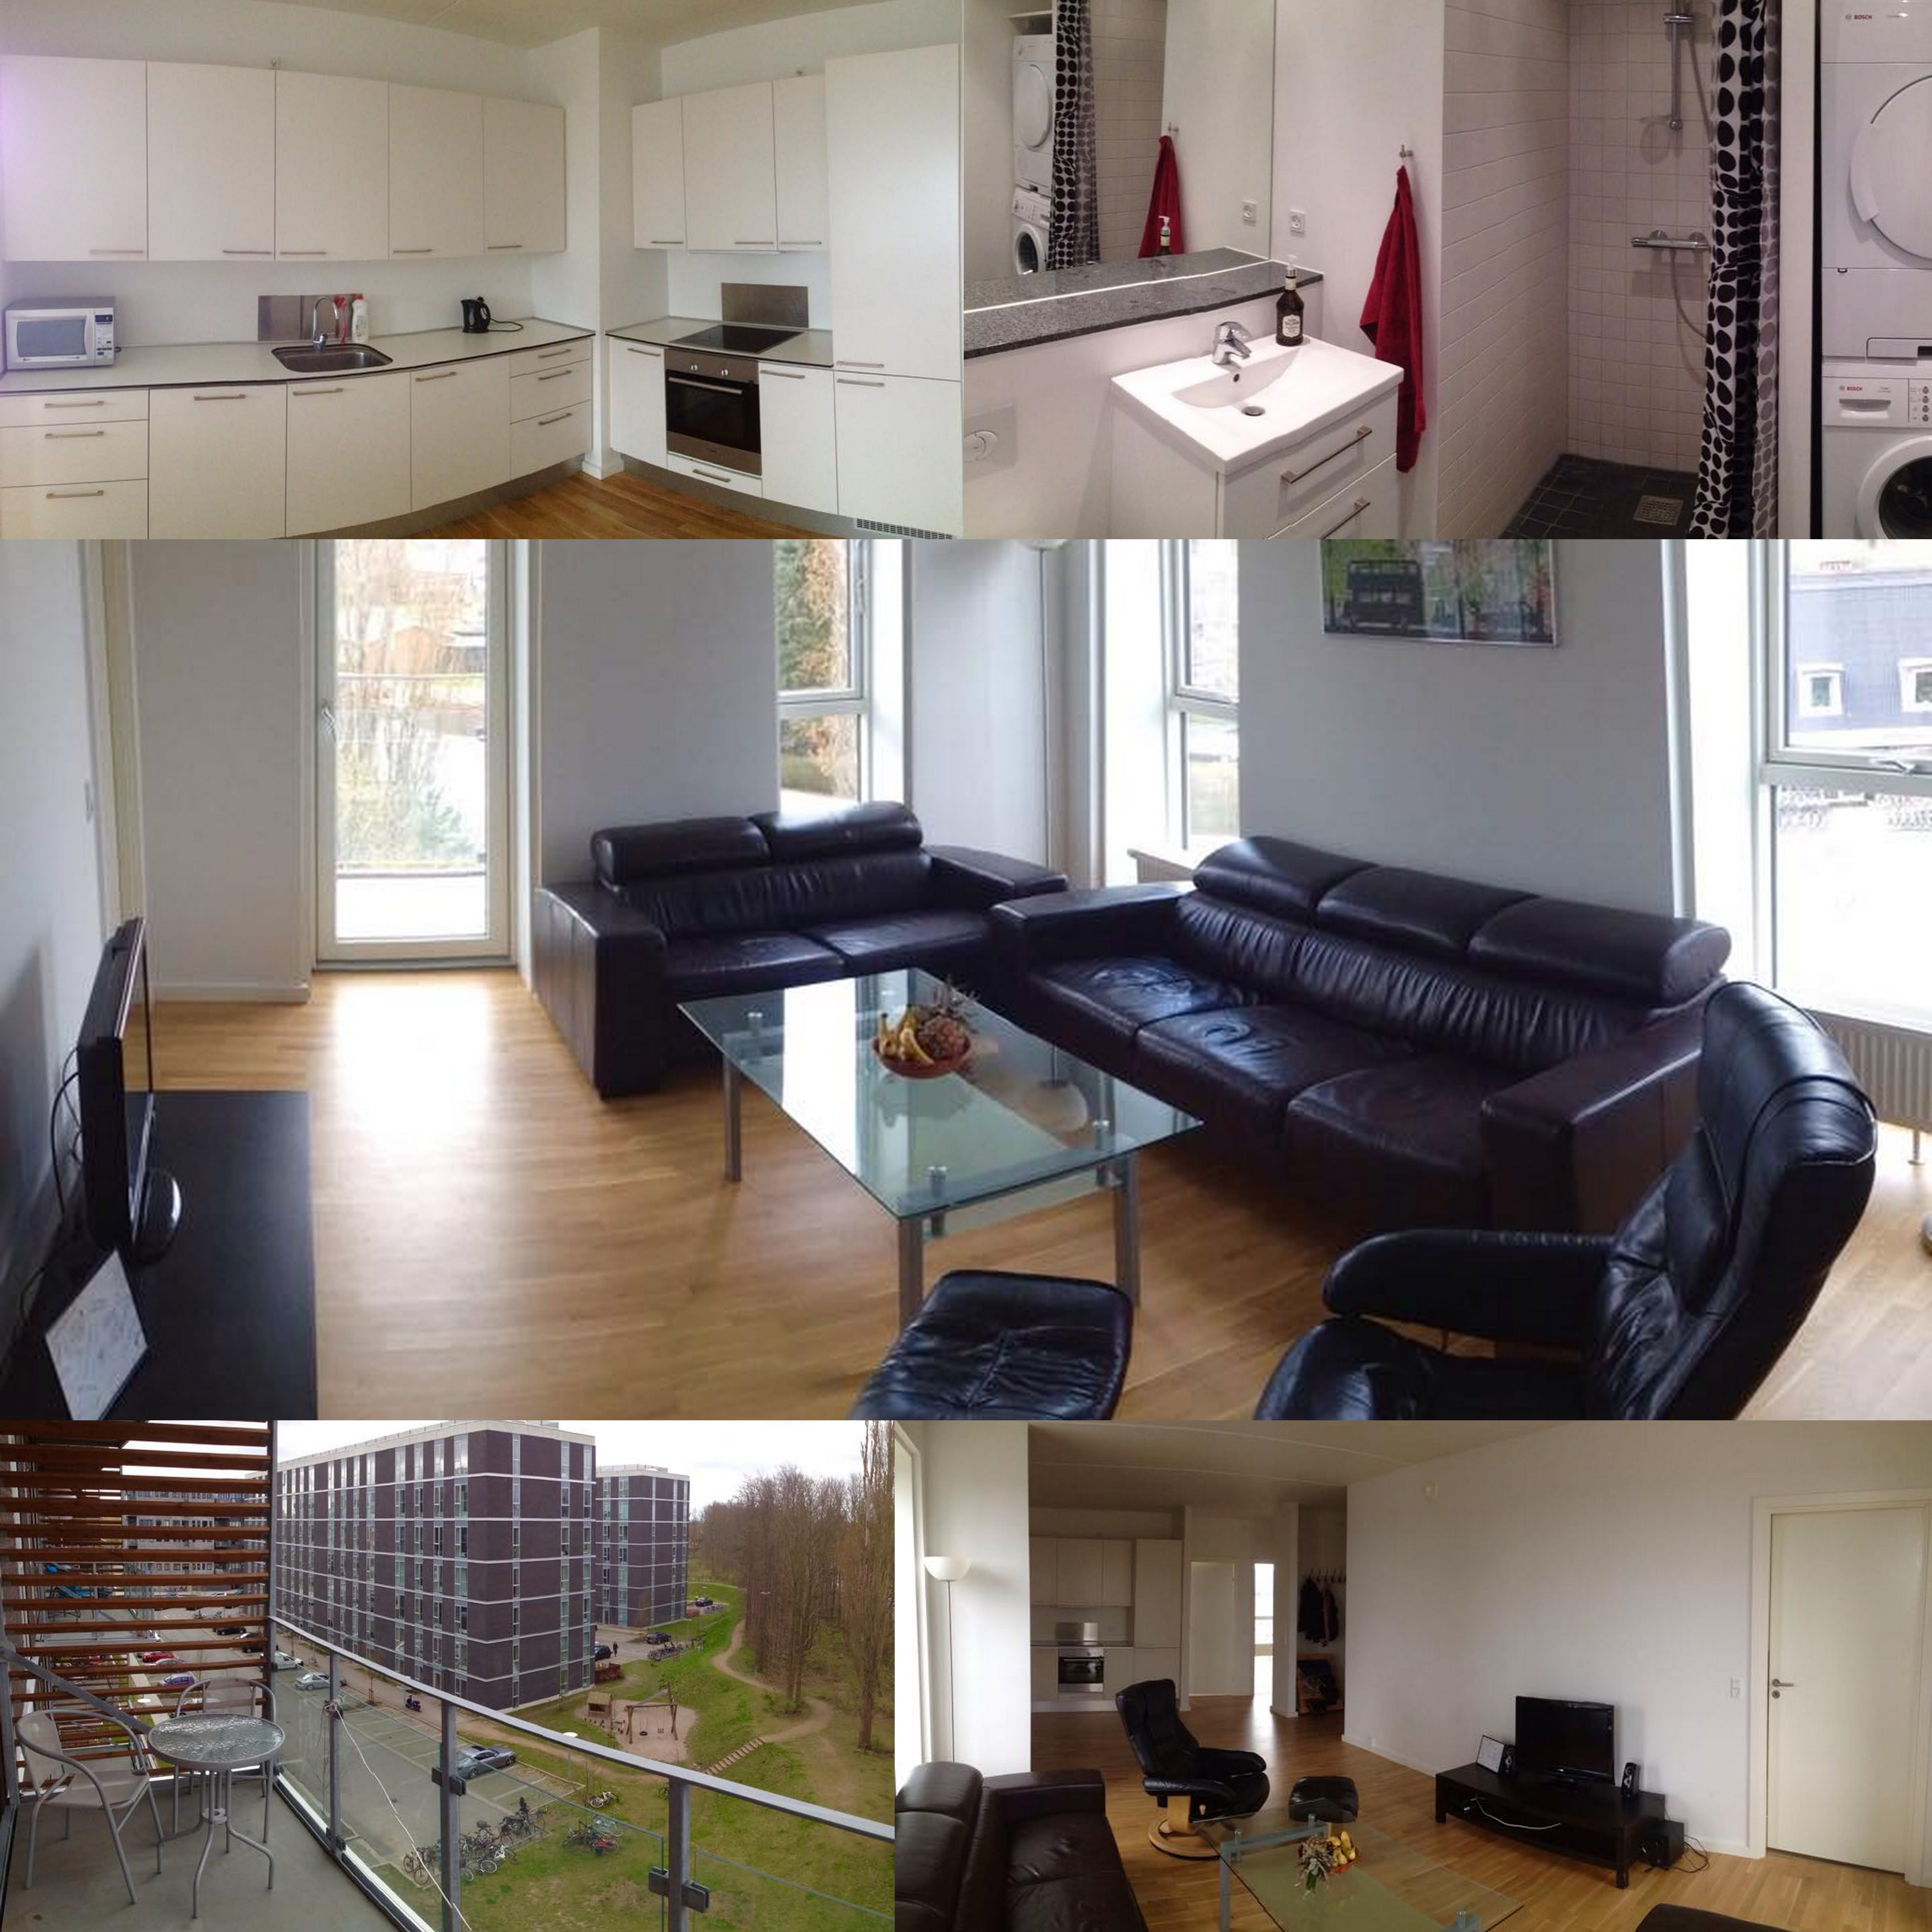 A single room is available from April 1st in Søborg, Gyngemose Parkvej